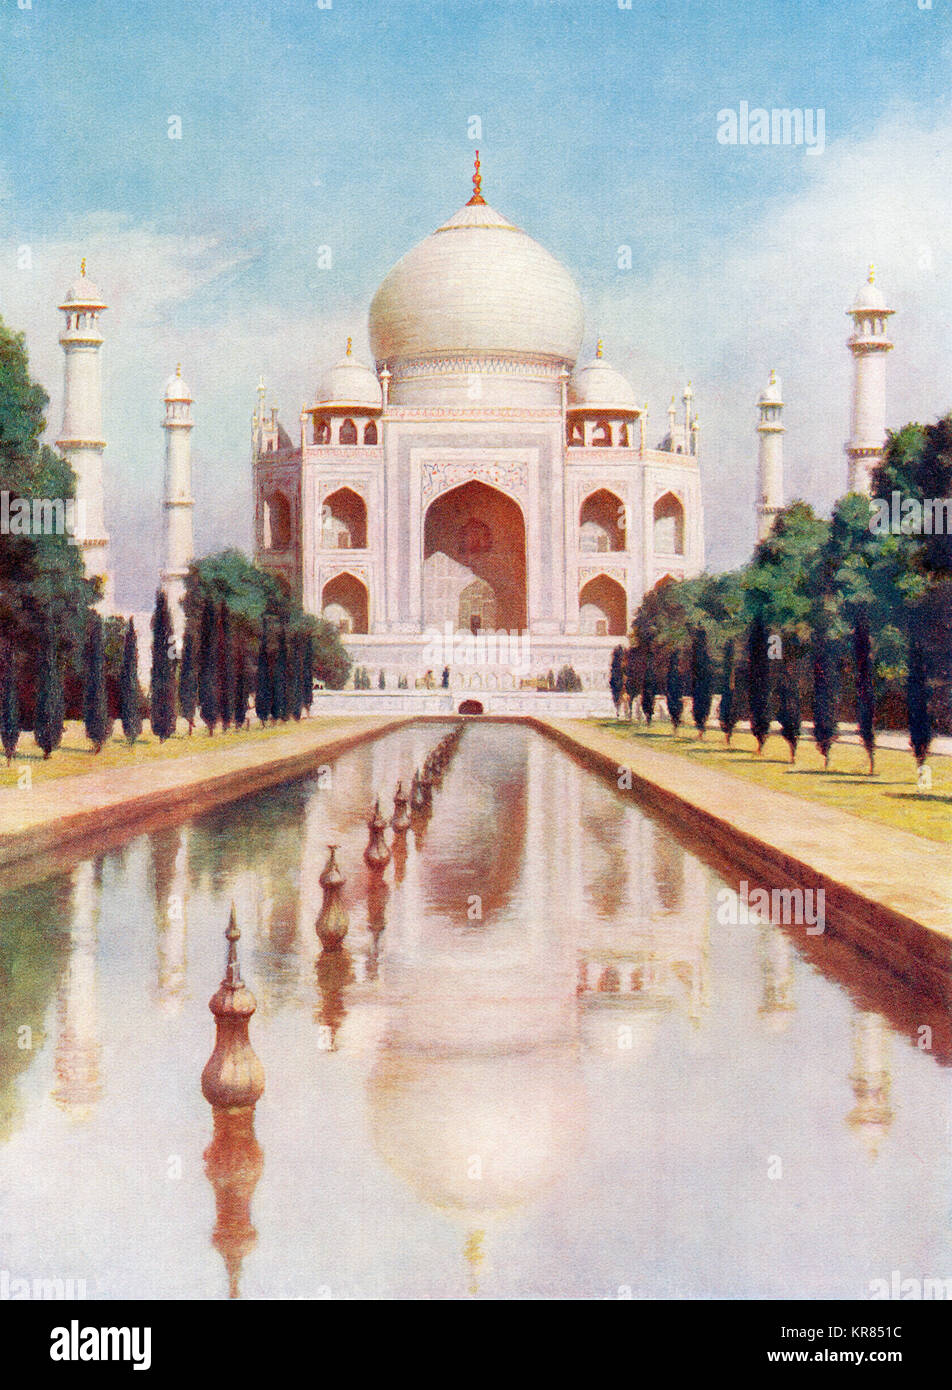 The Taj-Mahal, Agra, Uttar Pradesh, India.  It was commissioned in 1632 by the Mughal emperor, Shah Jahan to house - Stock Image